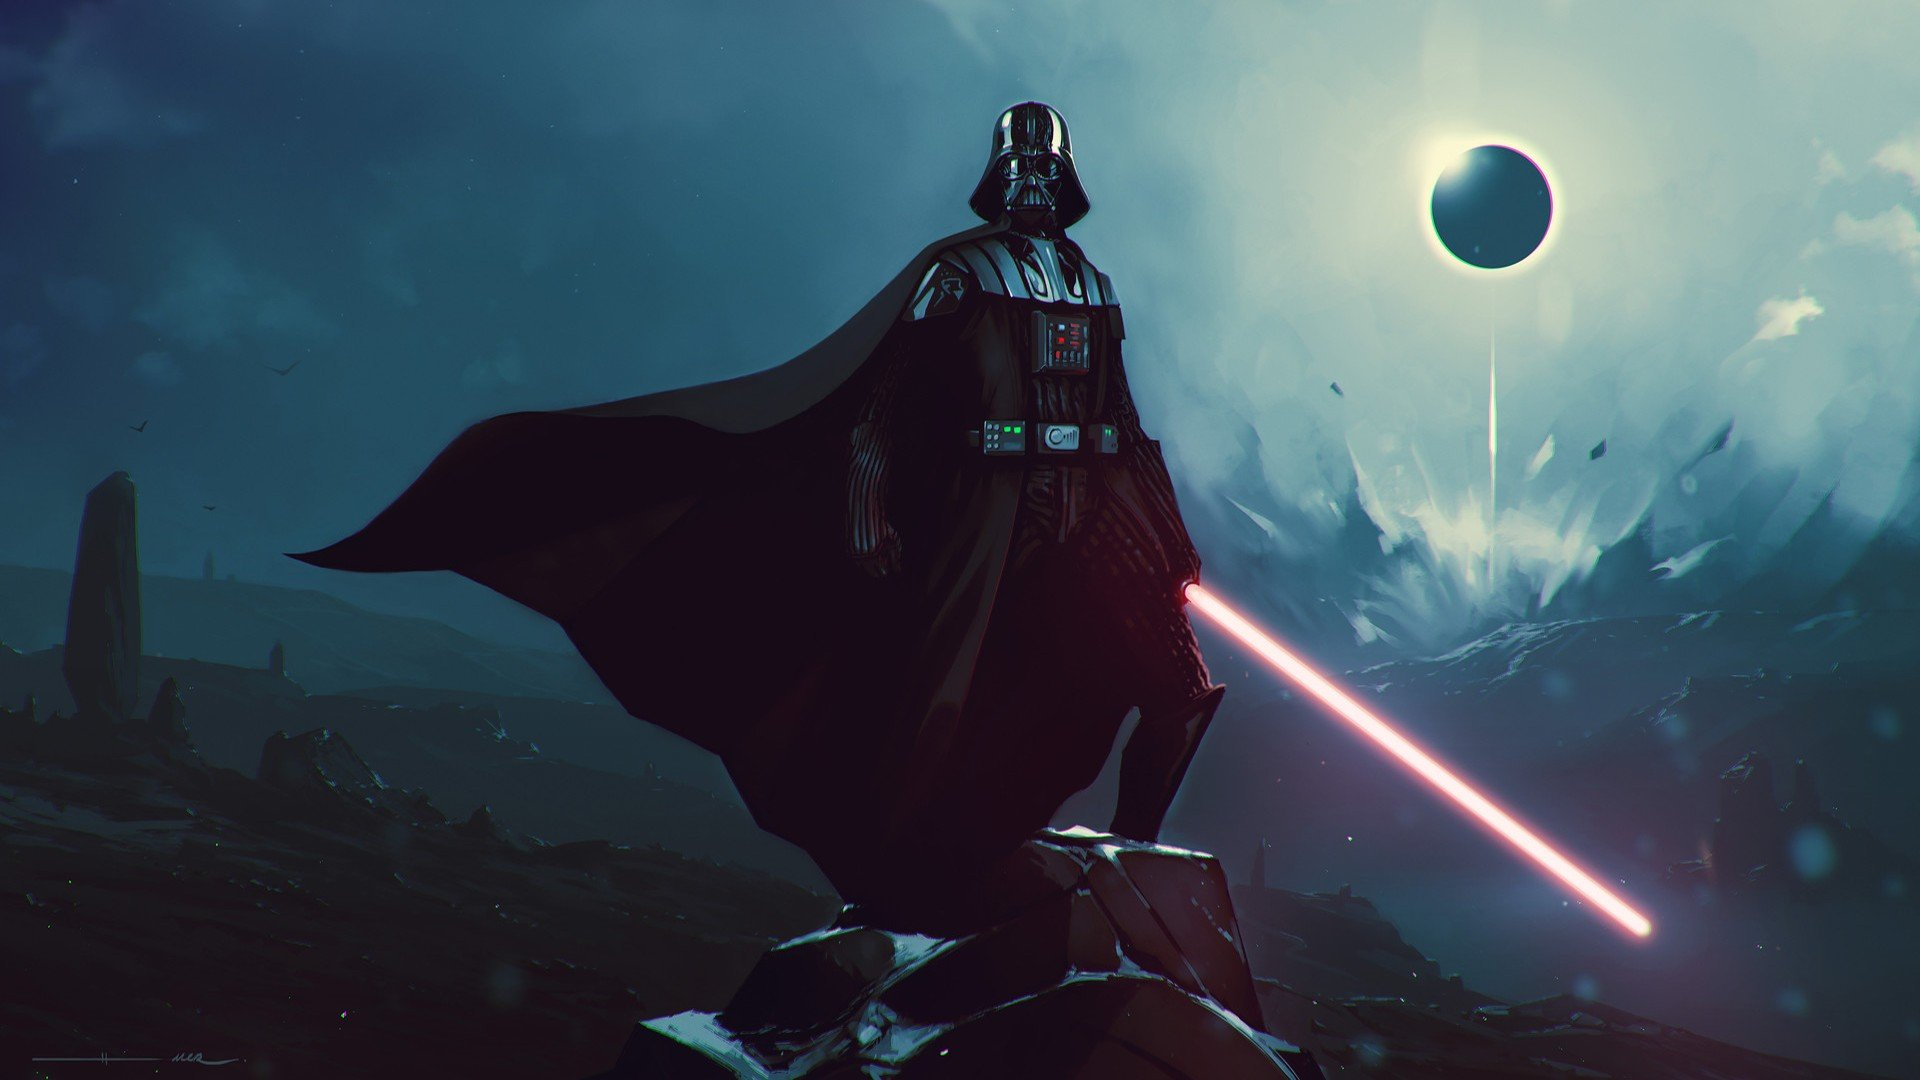 Darth Vader Star Wars Sith Lightsaber Hd Wallpapers Desktop And Mobile Images Photos